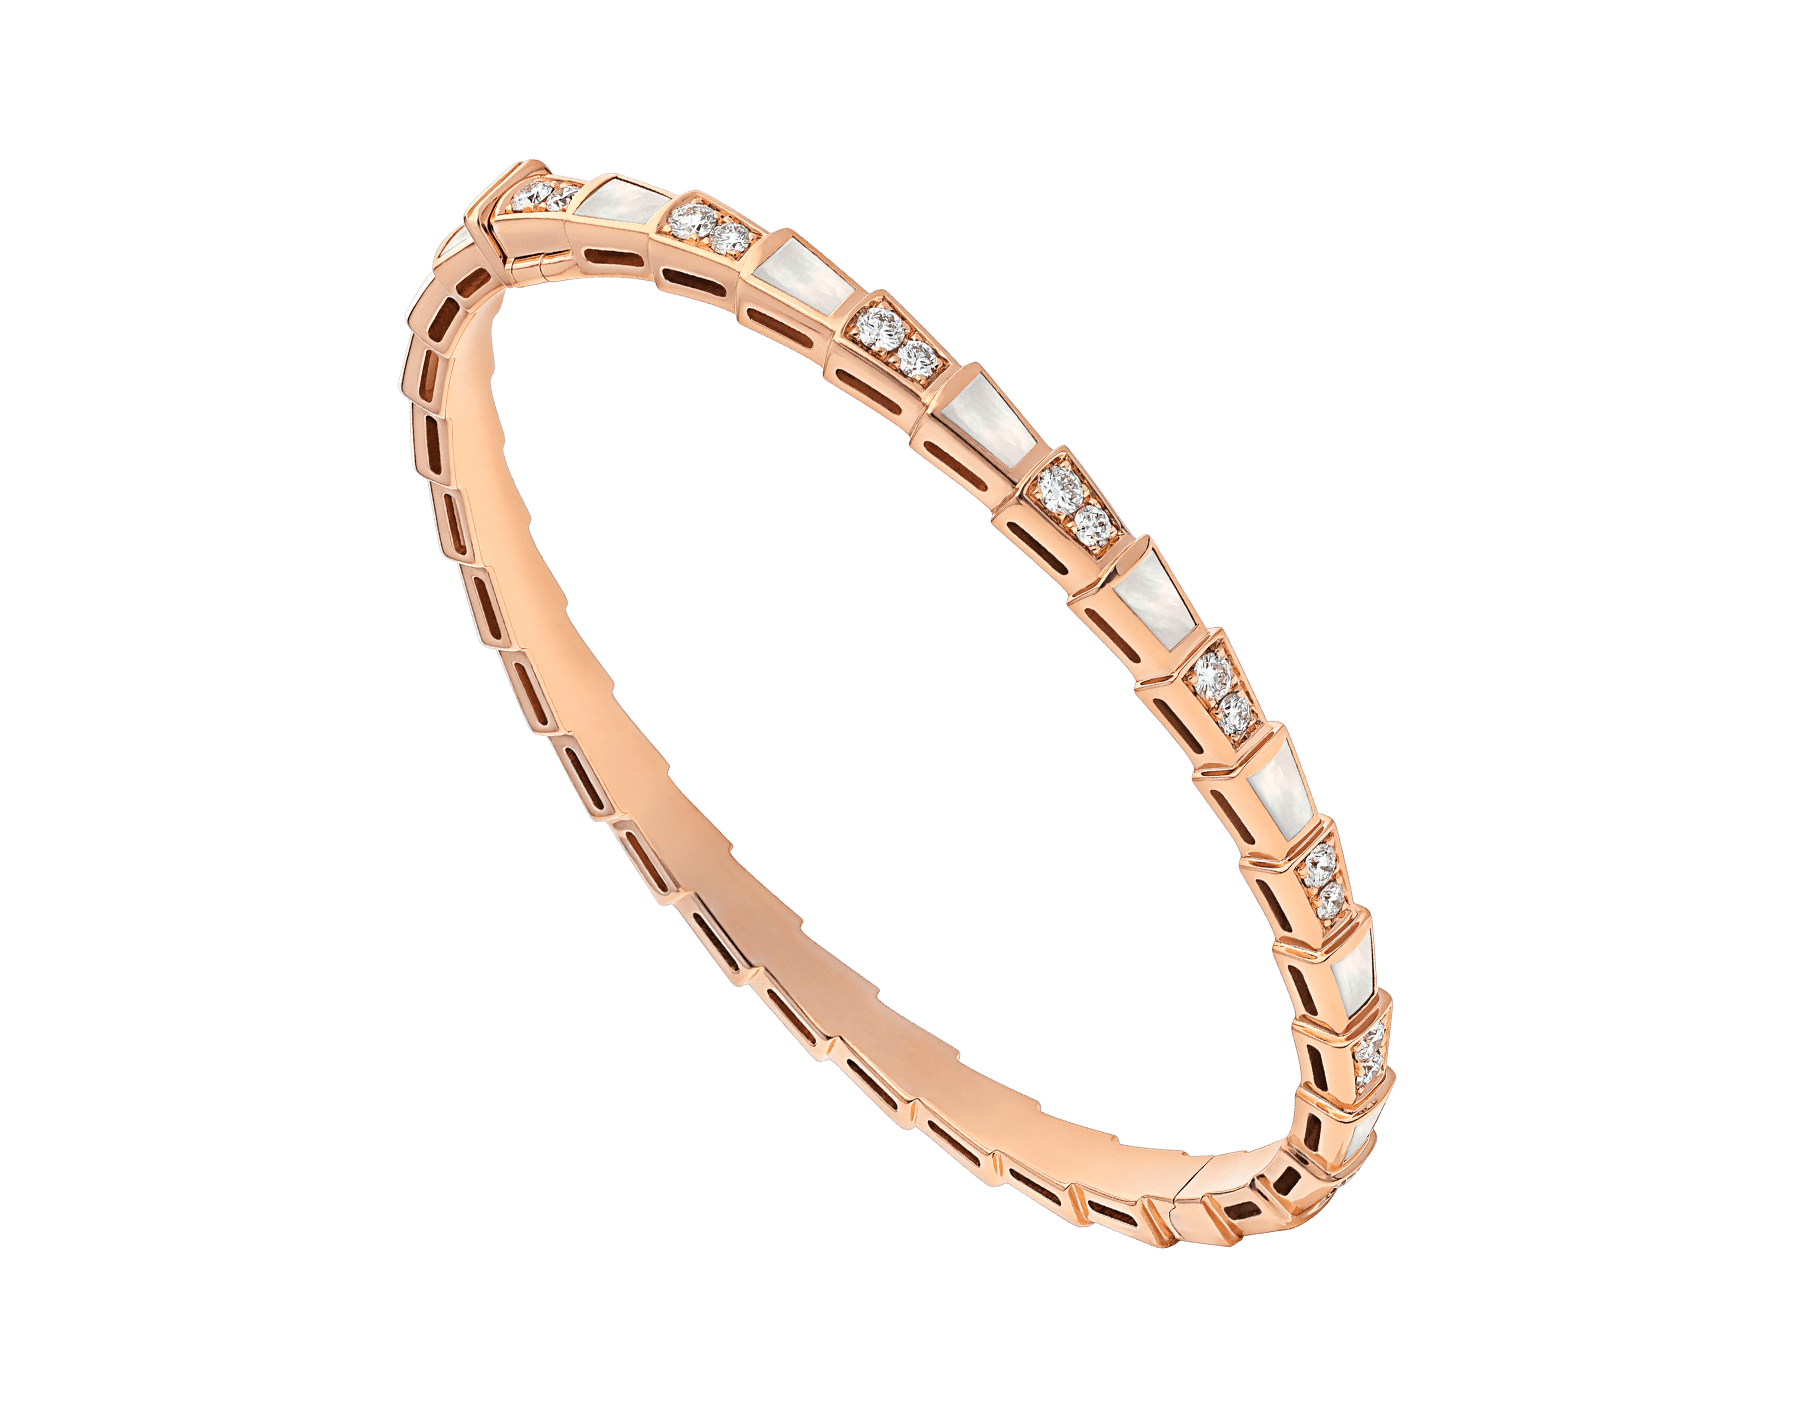 Serpenti 18 kt rose gold bracelet set with mother-of-pearl elements and pavé diamonds BR858356 image 1